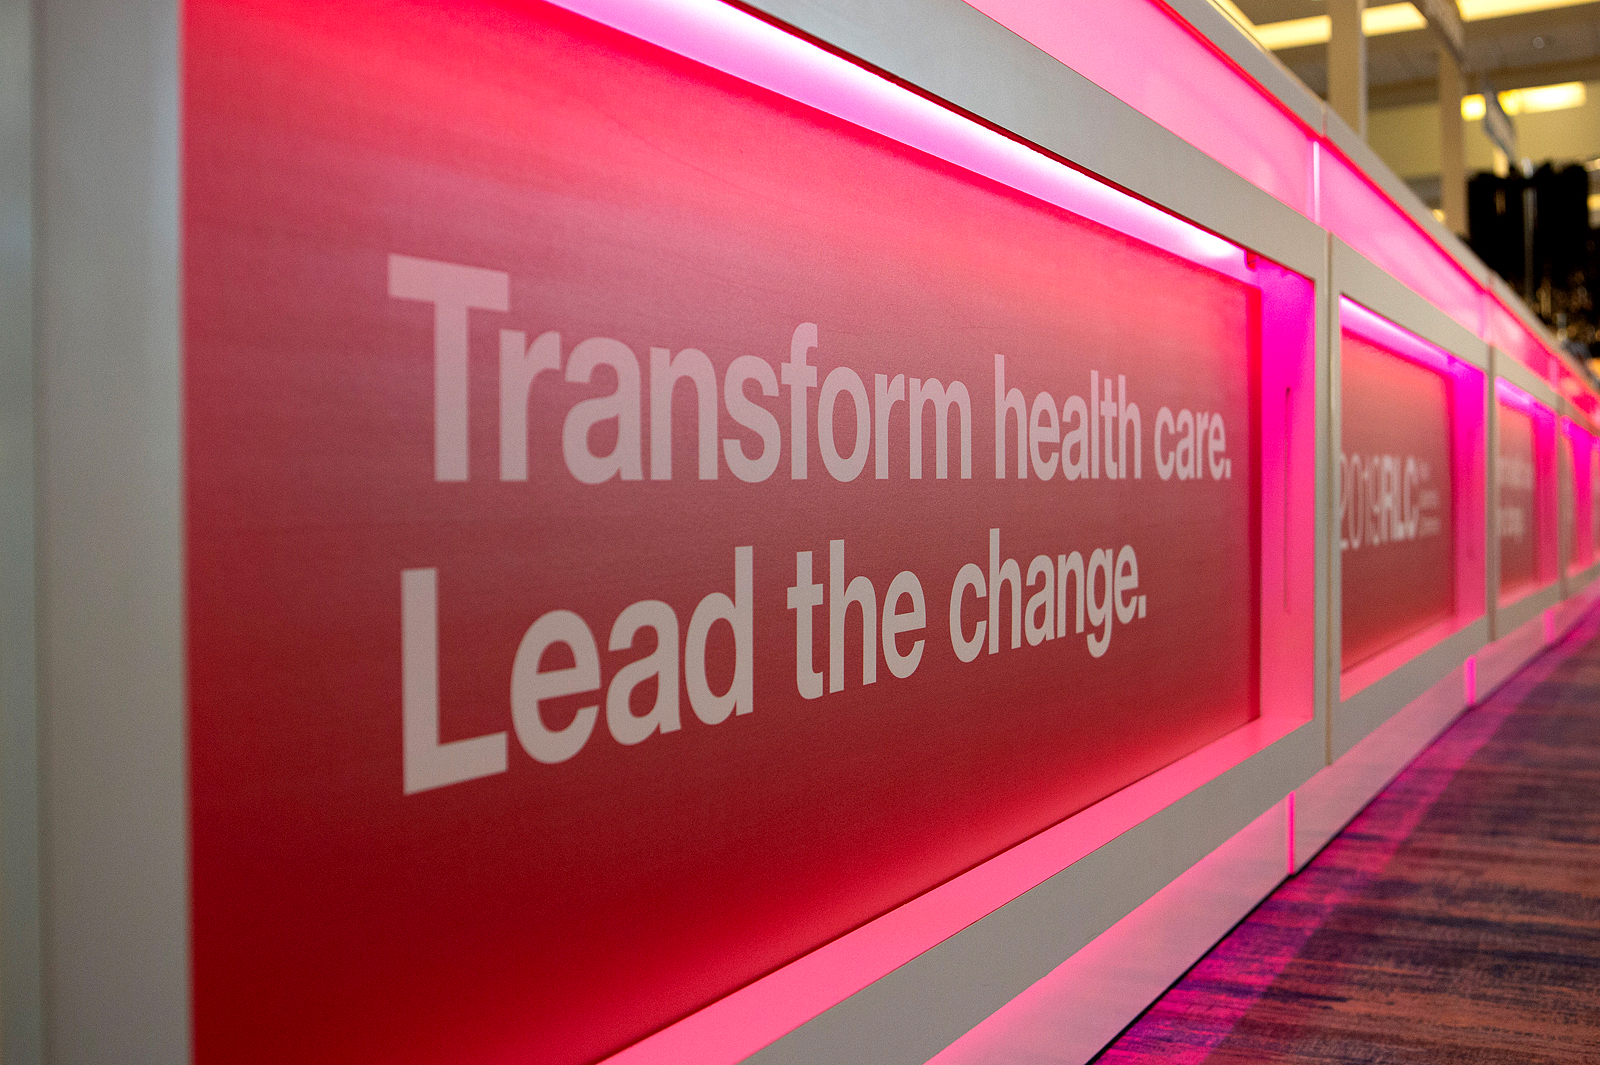 CVS Banners - Transform Health Care. Lead The Change.